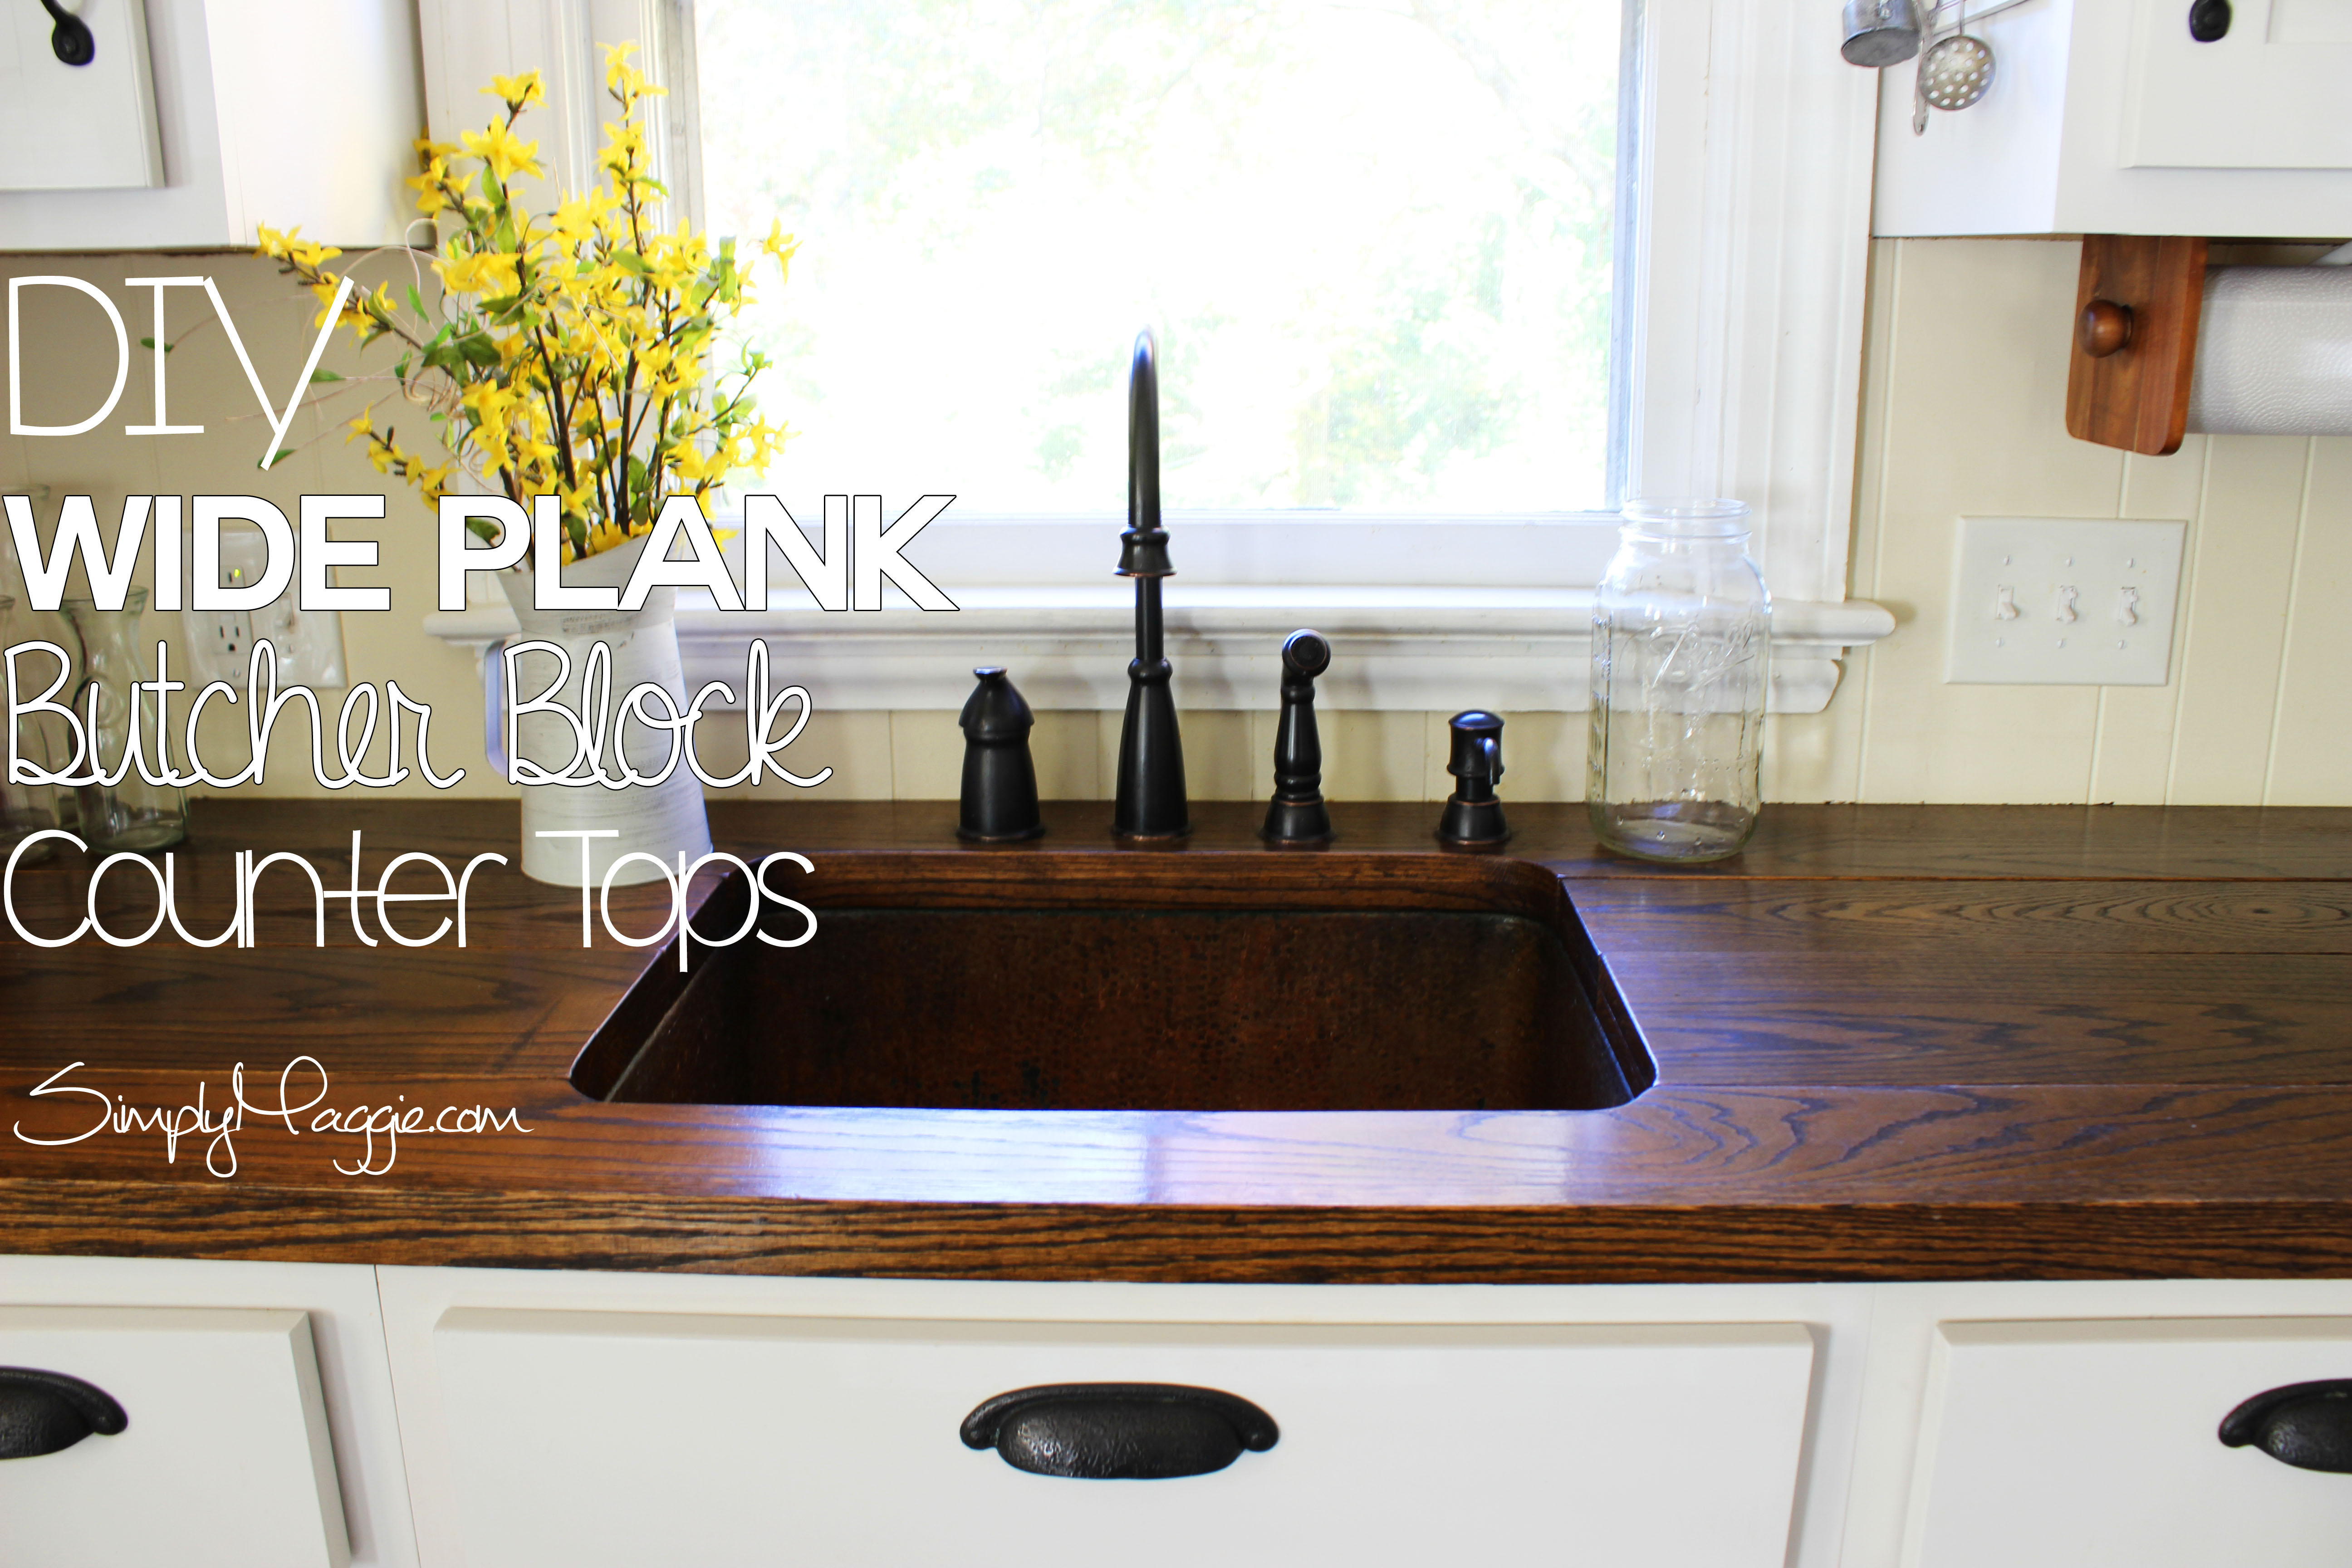 DIY Wide Plank Butcher Block Counter Tops www.SimplyMaggie.com